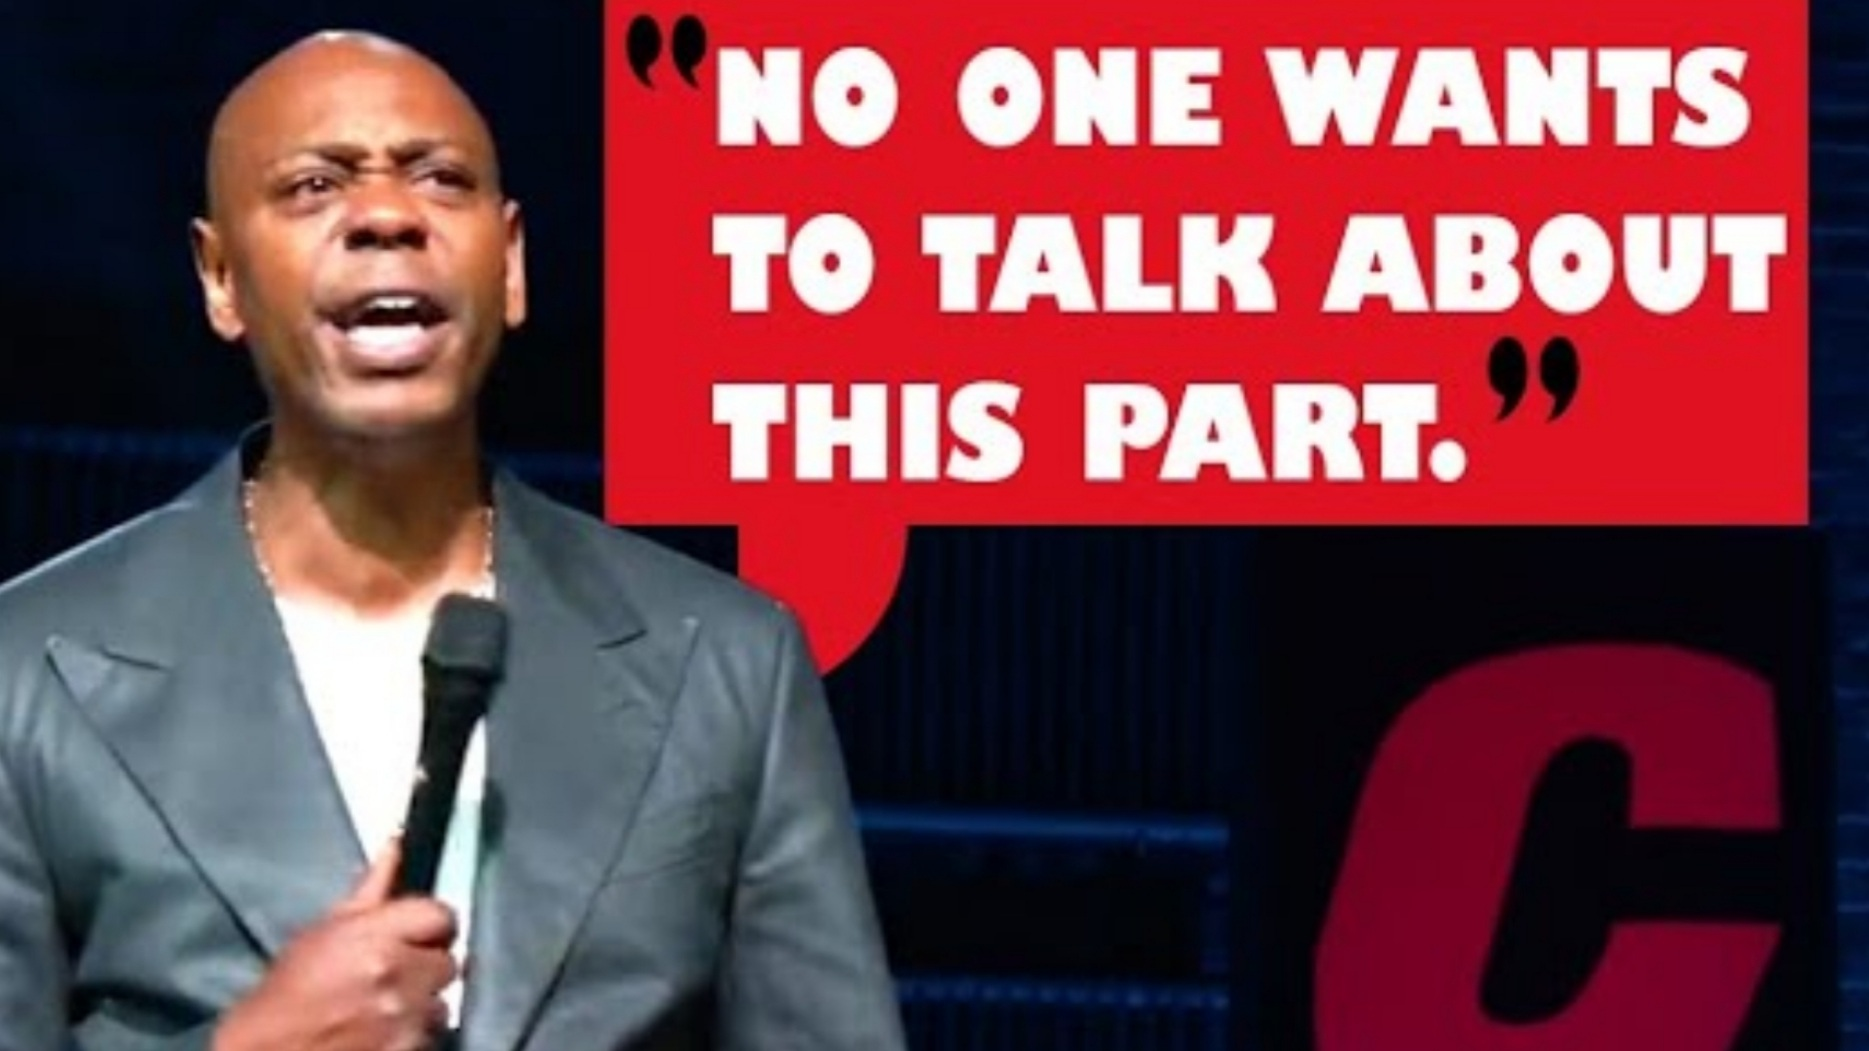 Dave Chapelle Offers to Sit Down With Netflix Employees to Talk About His Jokes But Nobody From the Platform Has Taken His Offer According to His Team